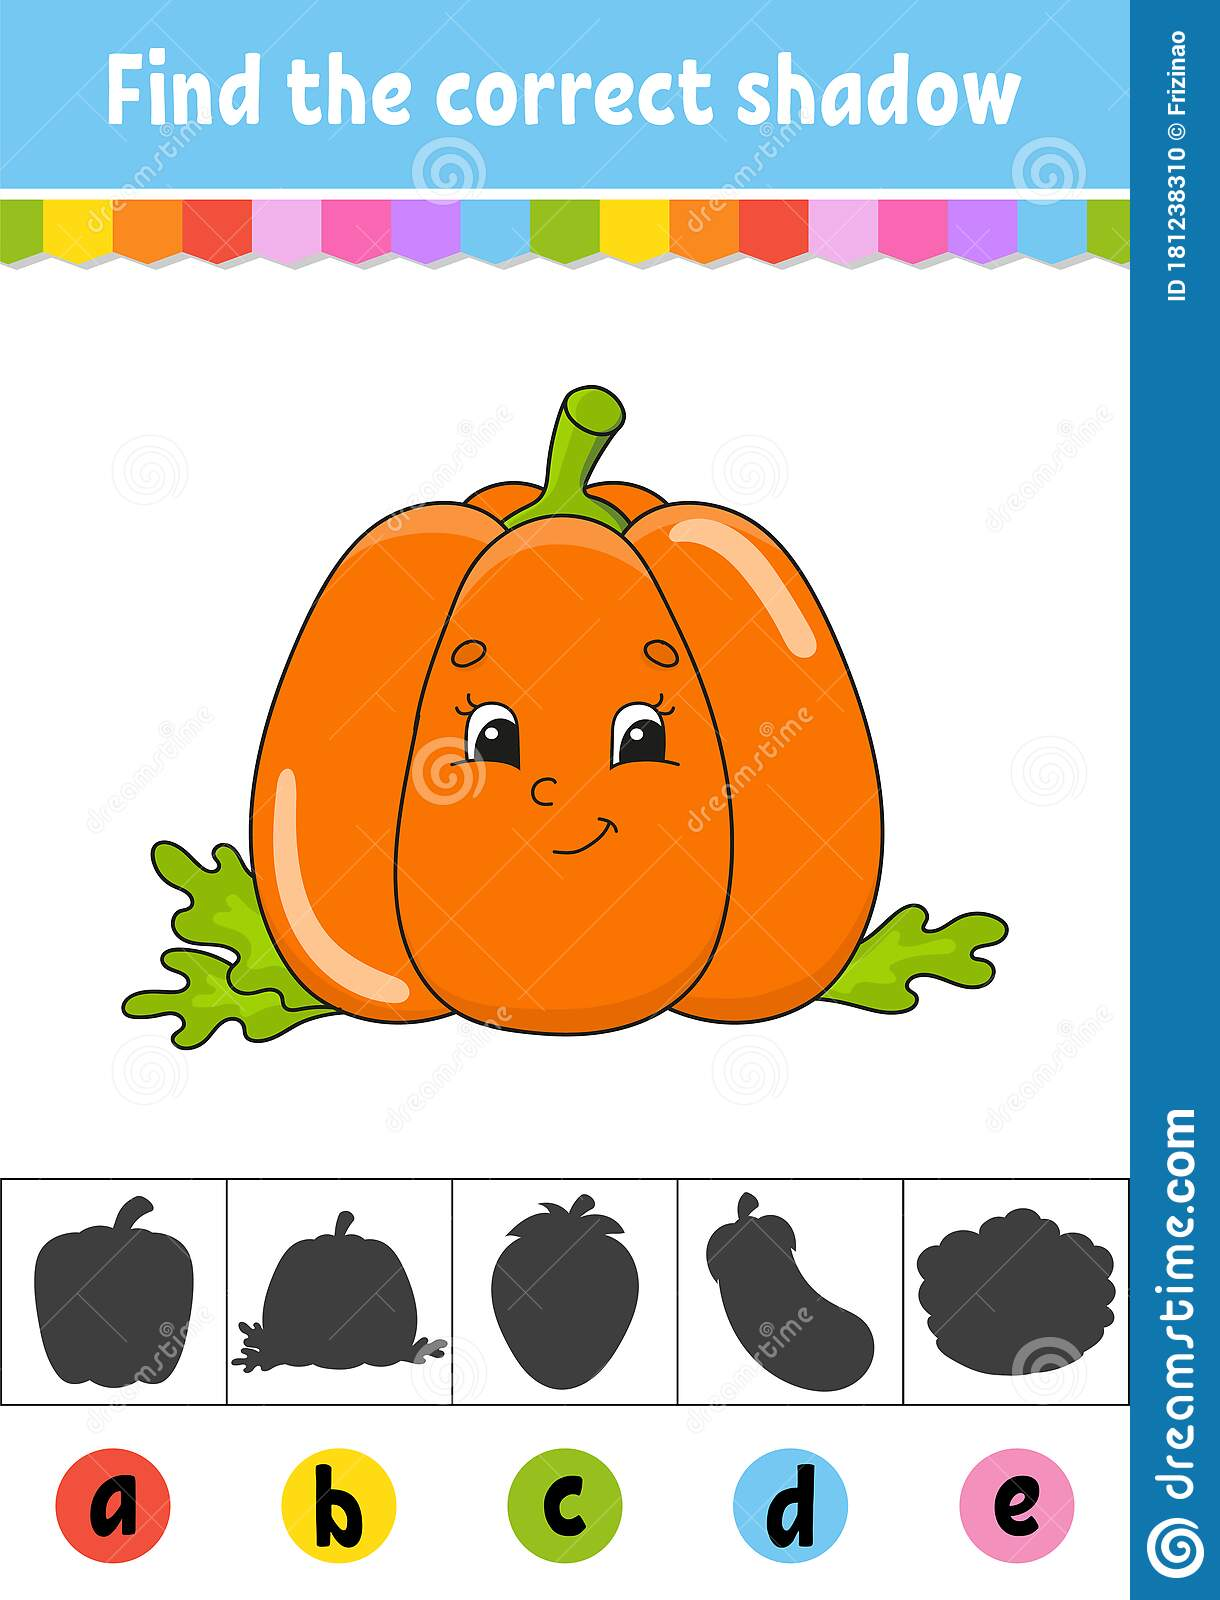 Find The Correct Shadow Vegetable Pumpkin Education